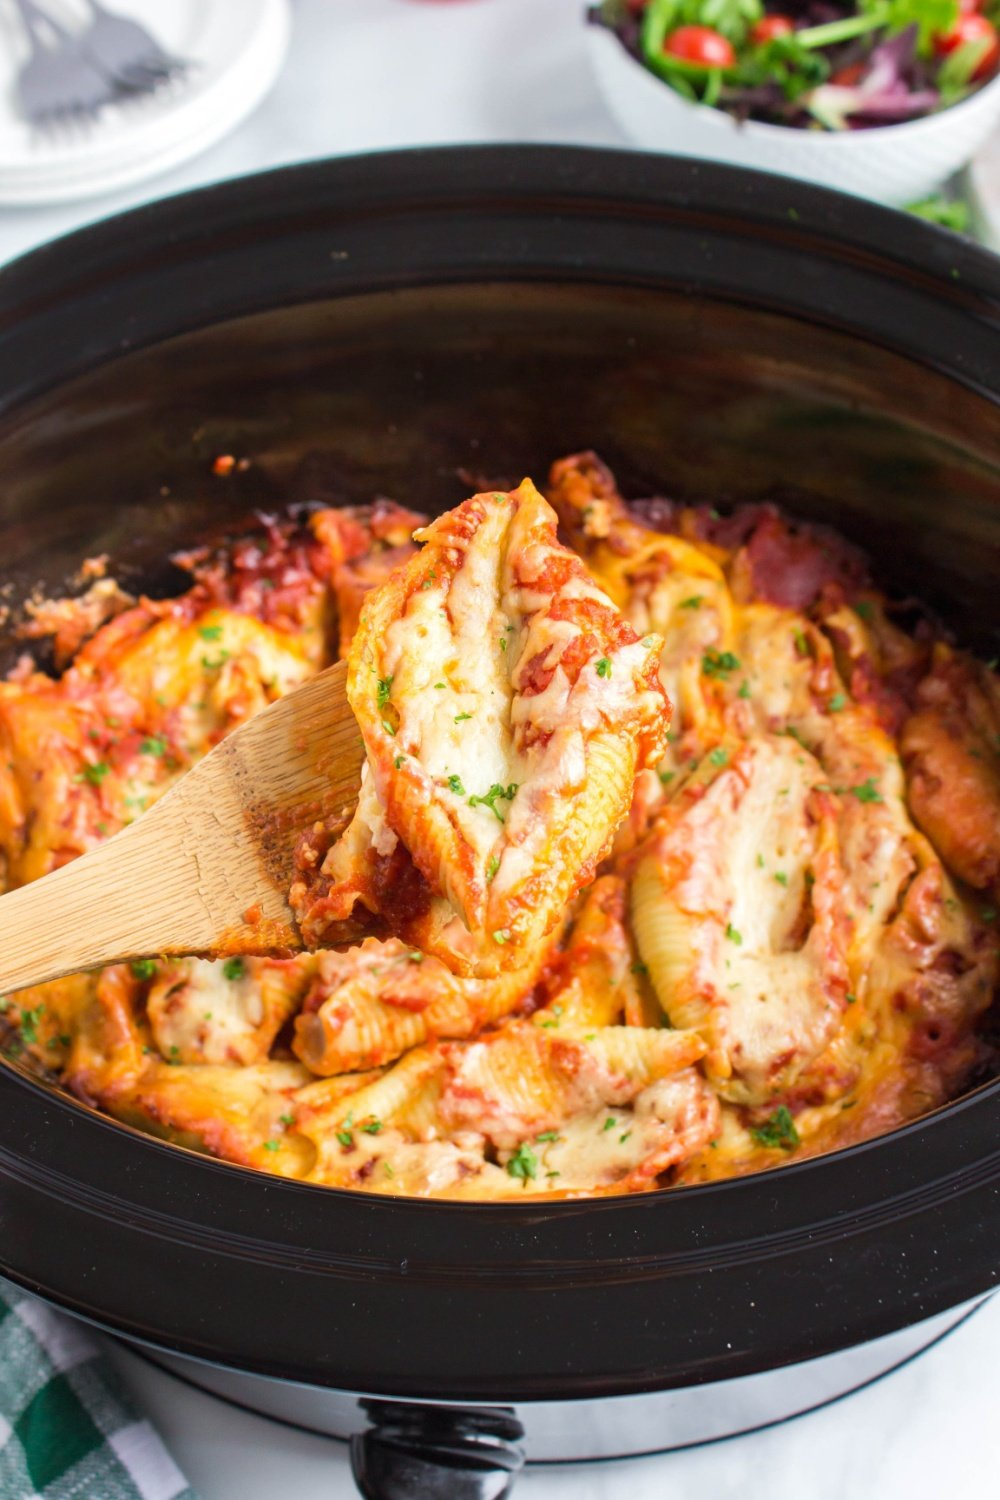 Crockpot Stuffed Shells in a slow cooker with a wooden spoon scooping up a serving